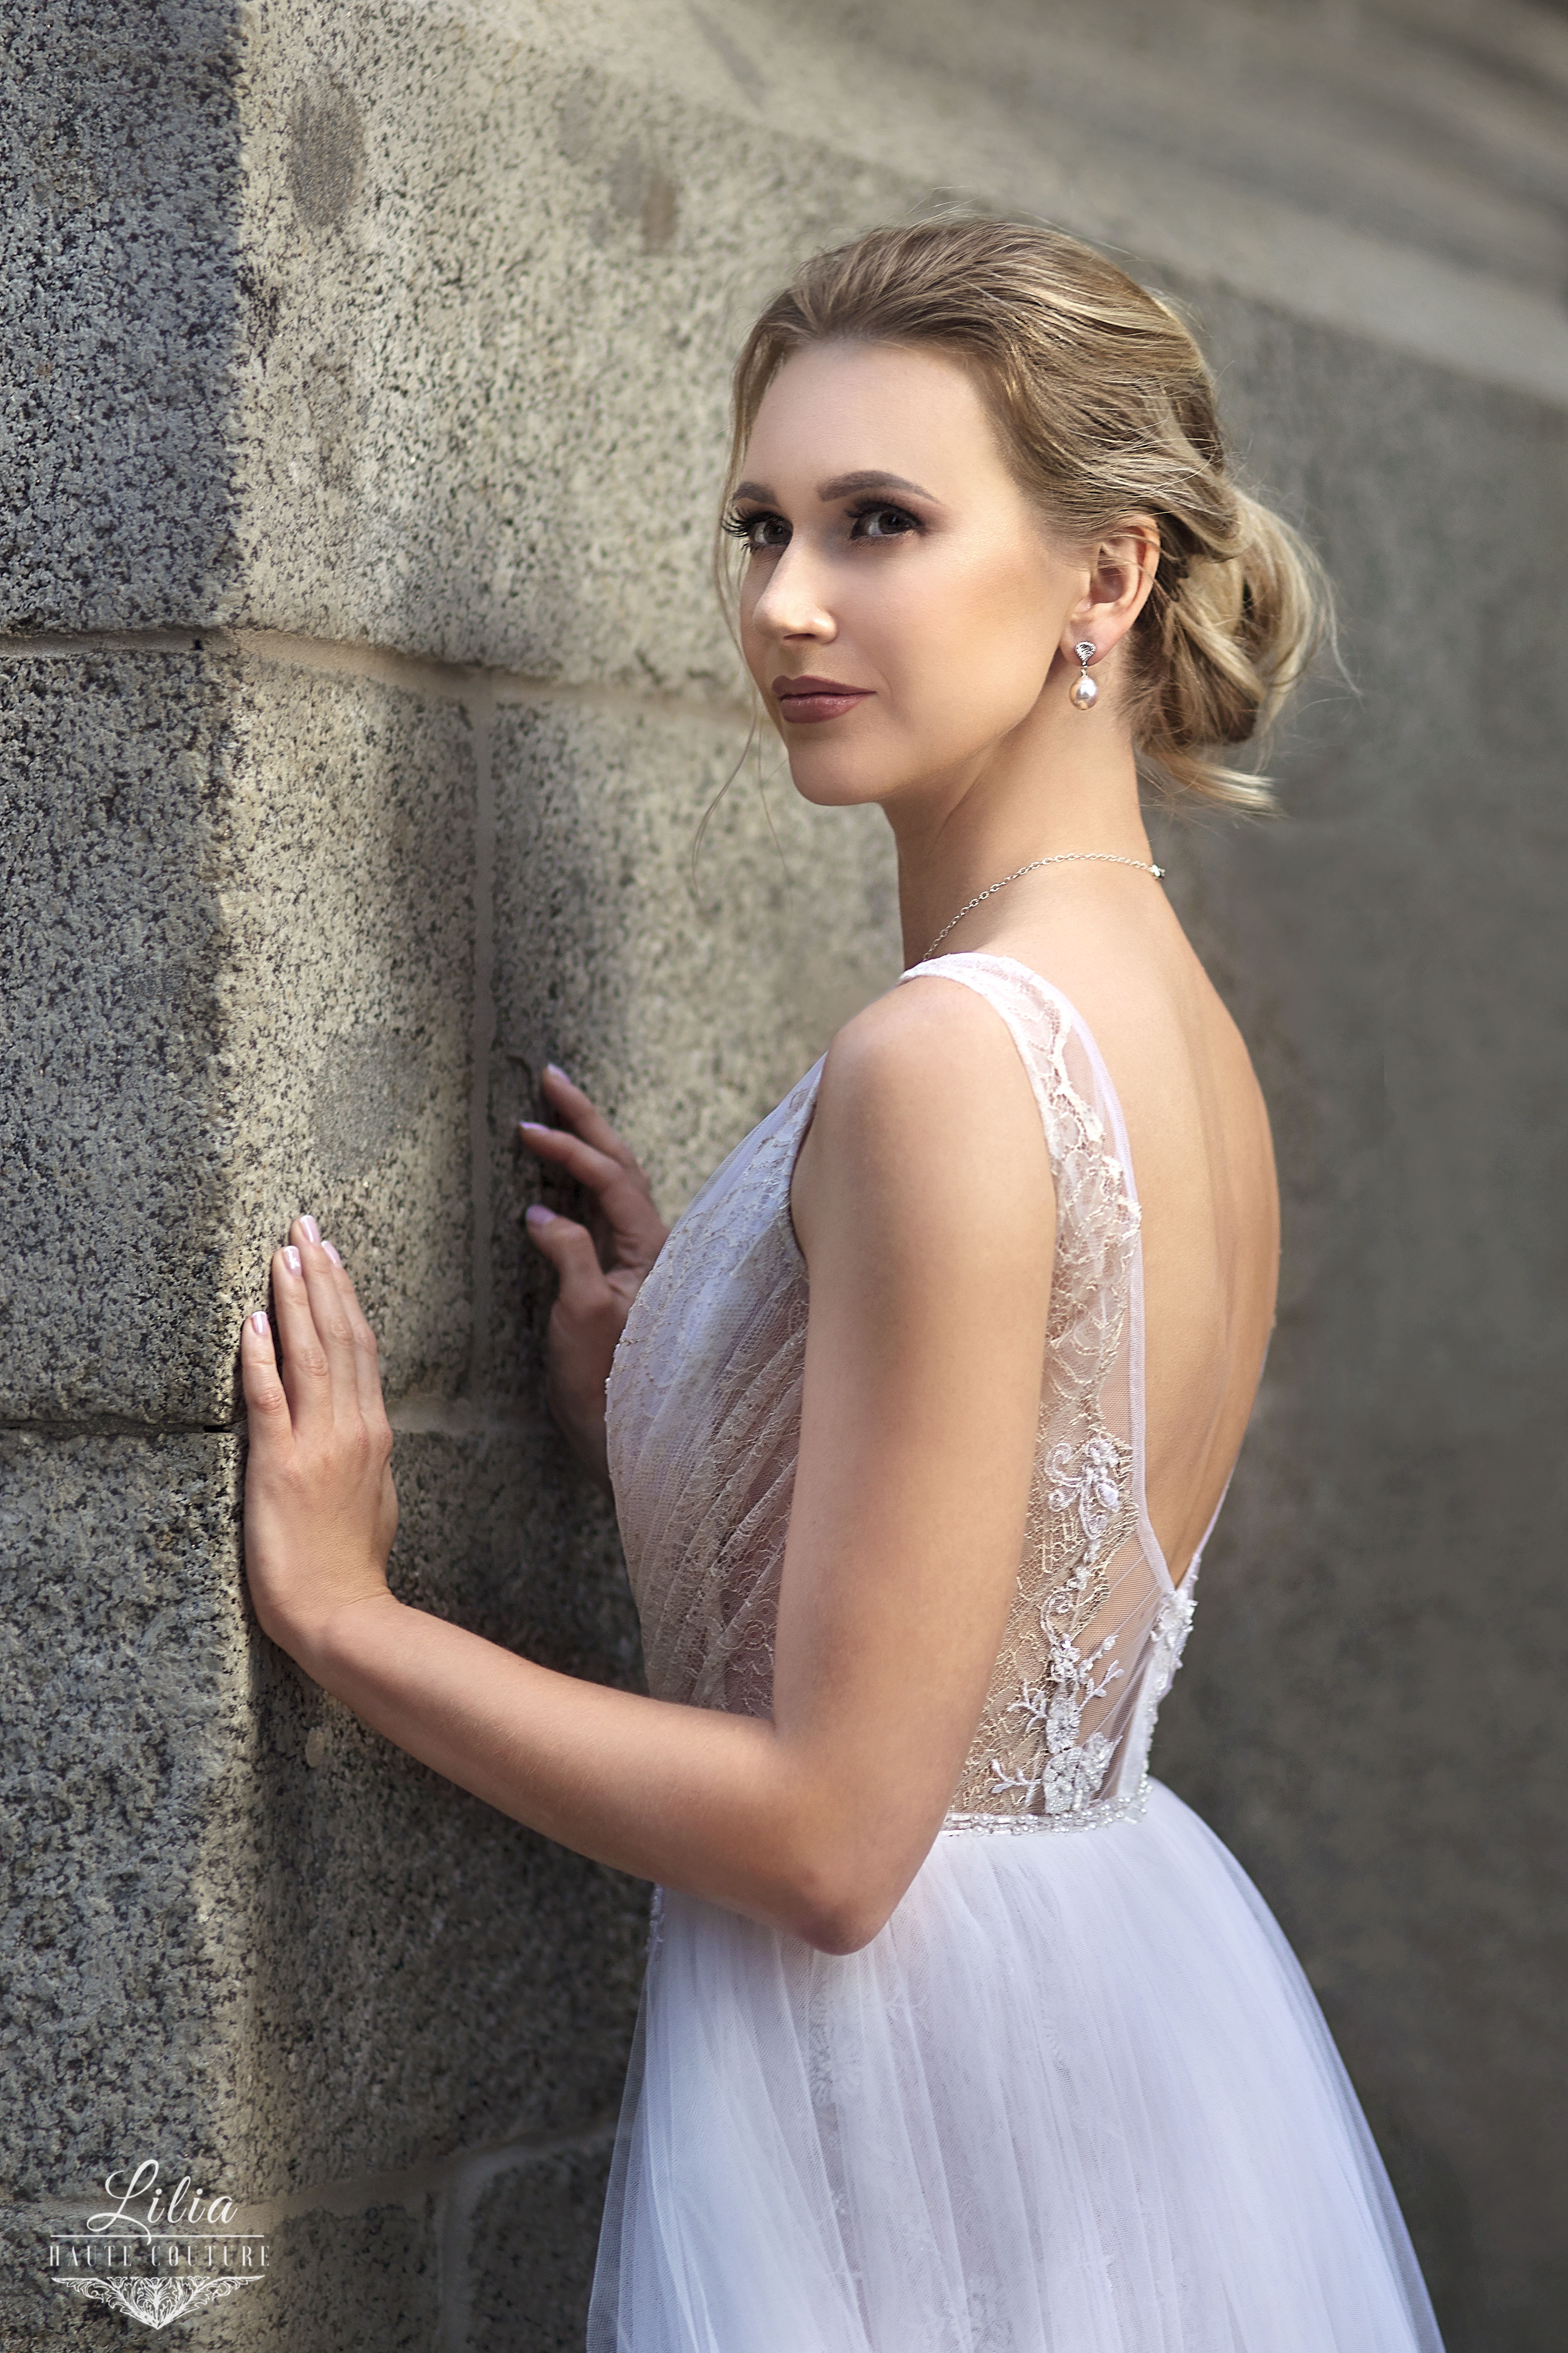 designer wedding dresses montreal high-end bridal store lilia haute couture